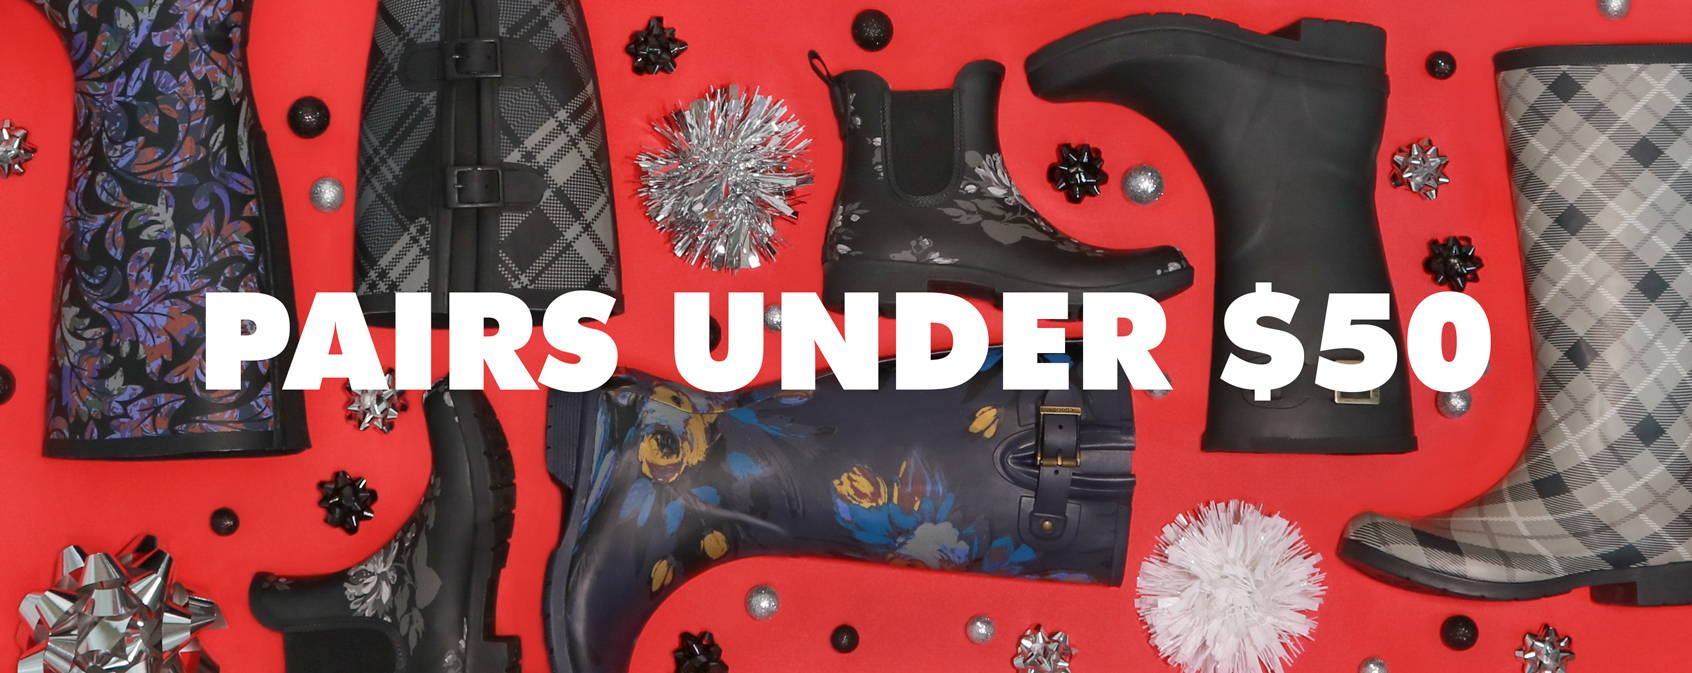 Pairs Under $50: Shop our holiday selection of shoes under $50